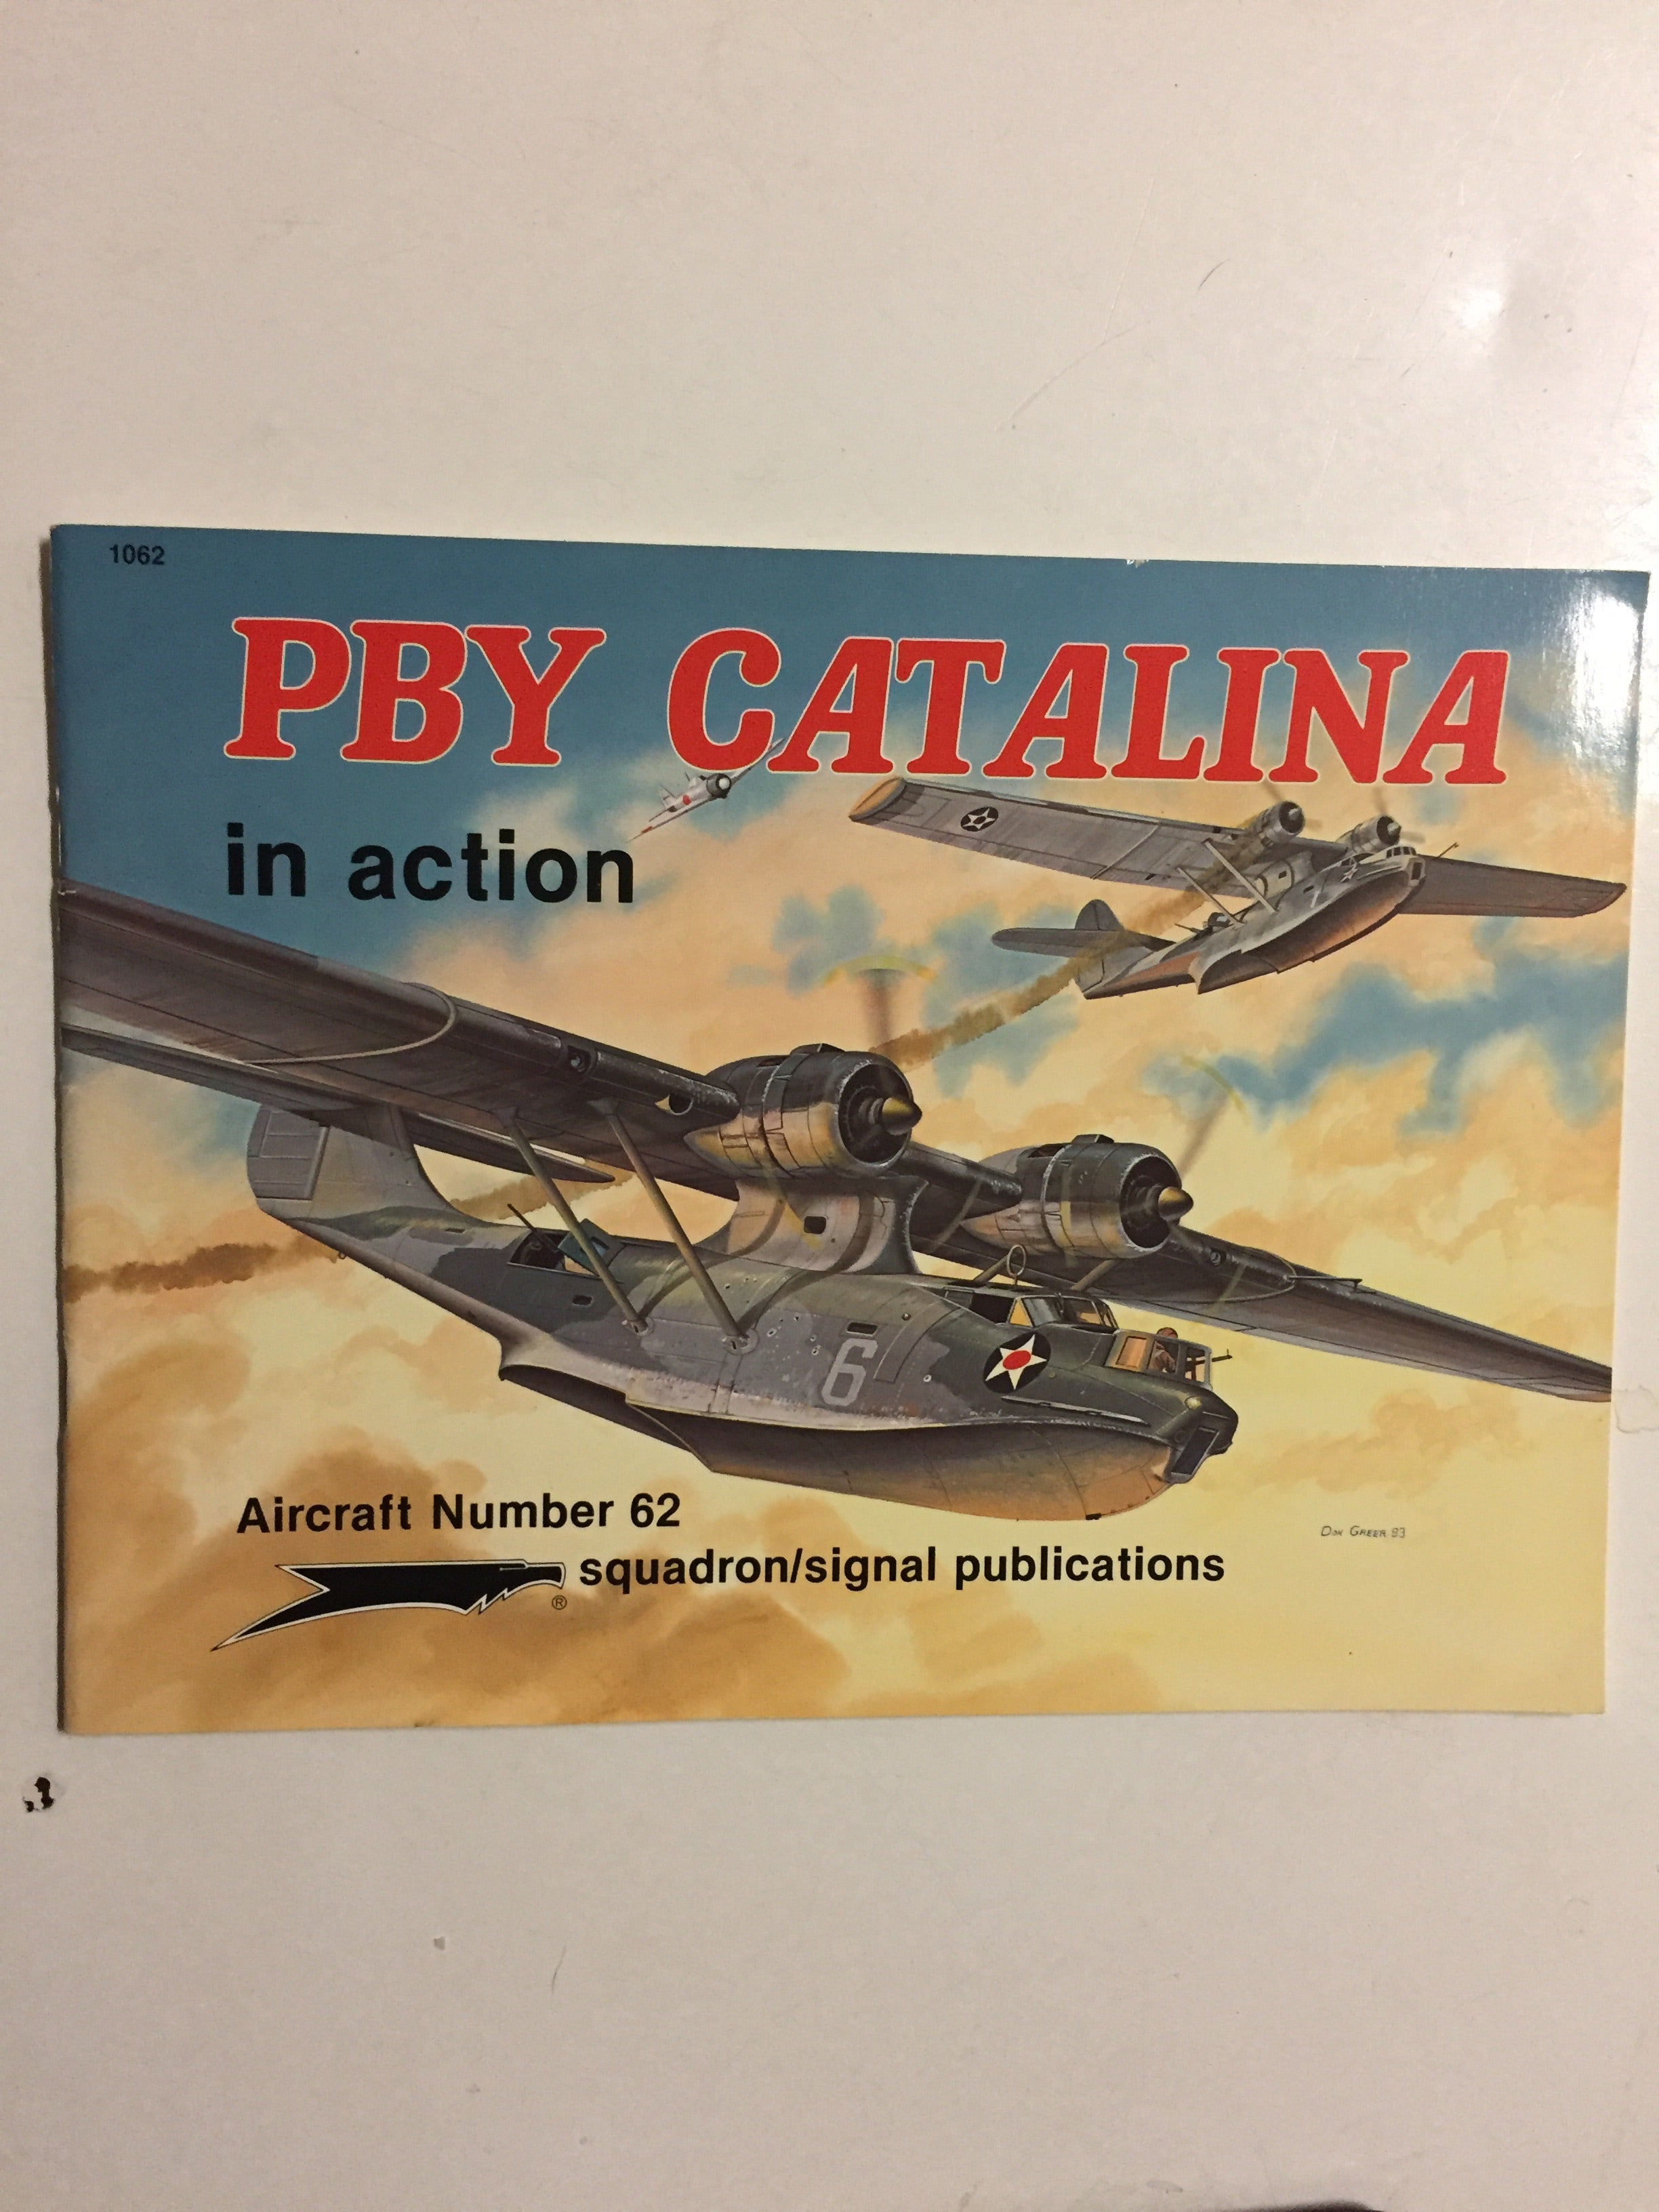 PBY Catalina in Action- Slick Cat Books